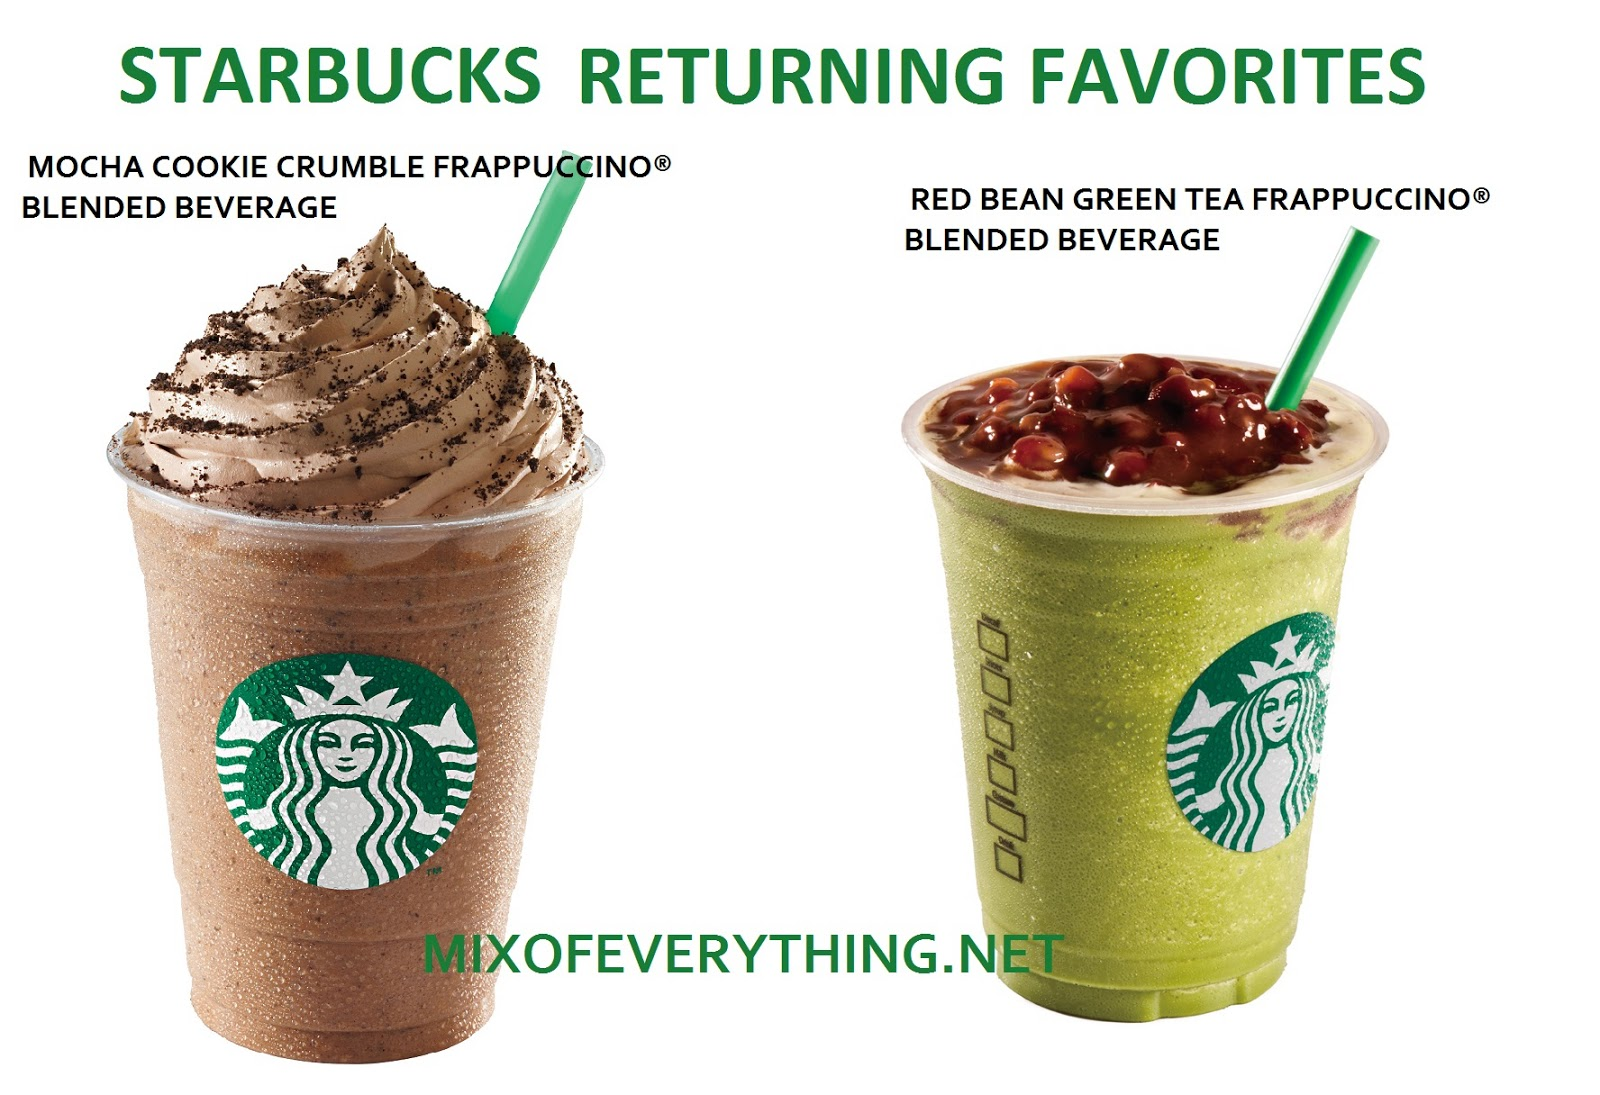 Starbucks Brings Back Mocha Cookie Crumble And Red Bean